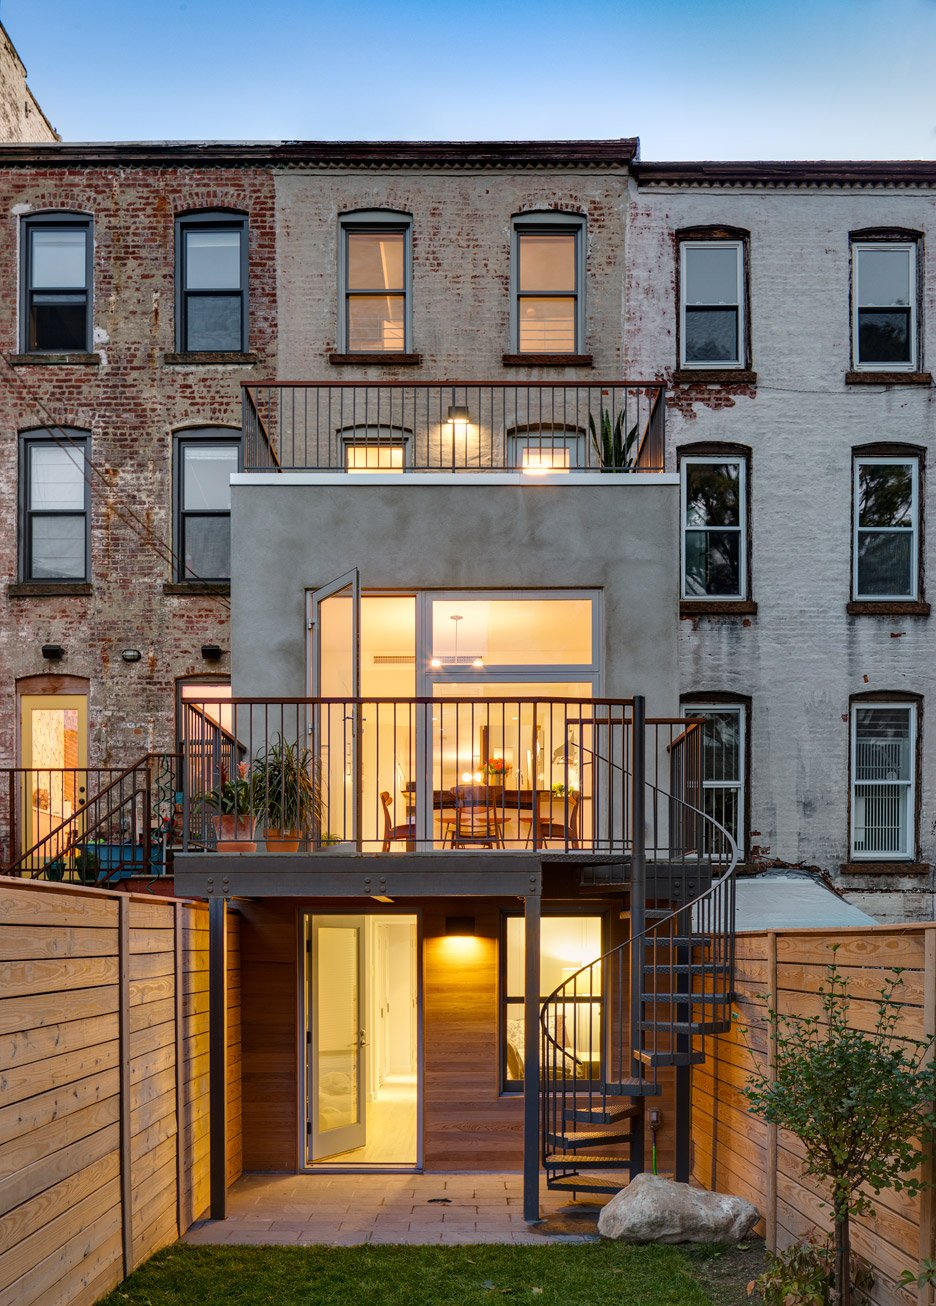 Barker freeman overhuals narrow brooklyn row house for a for Home design york